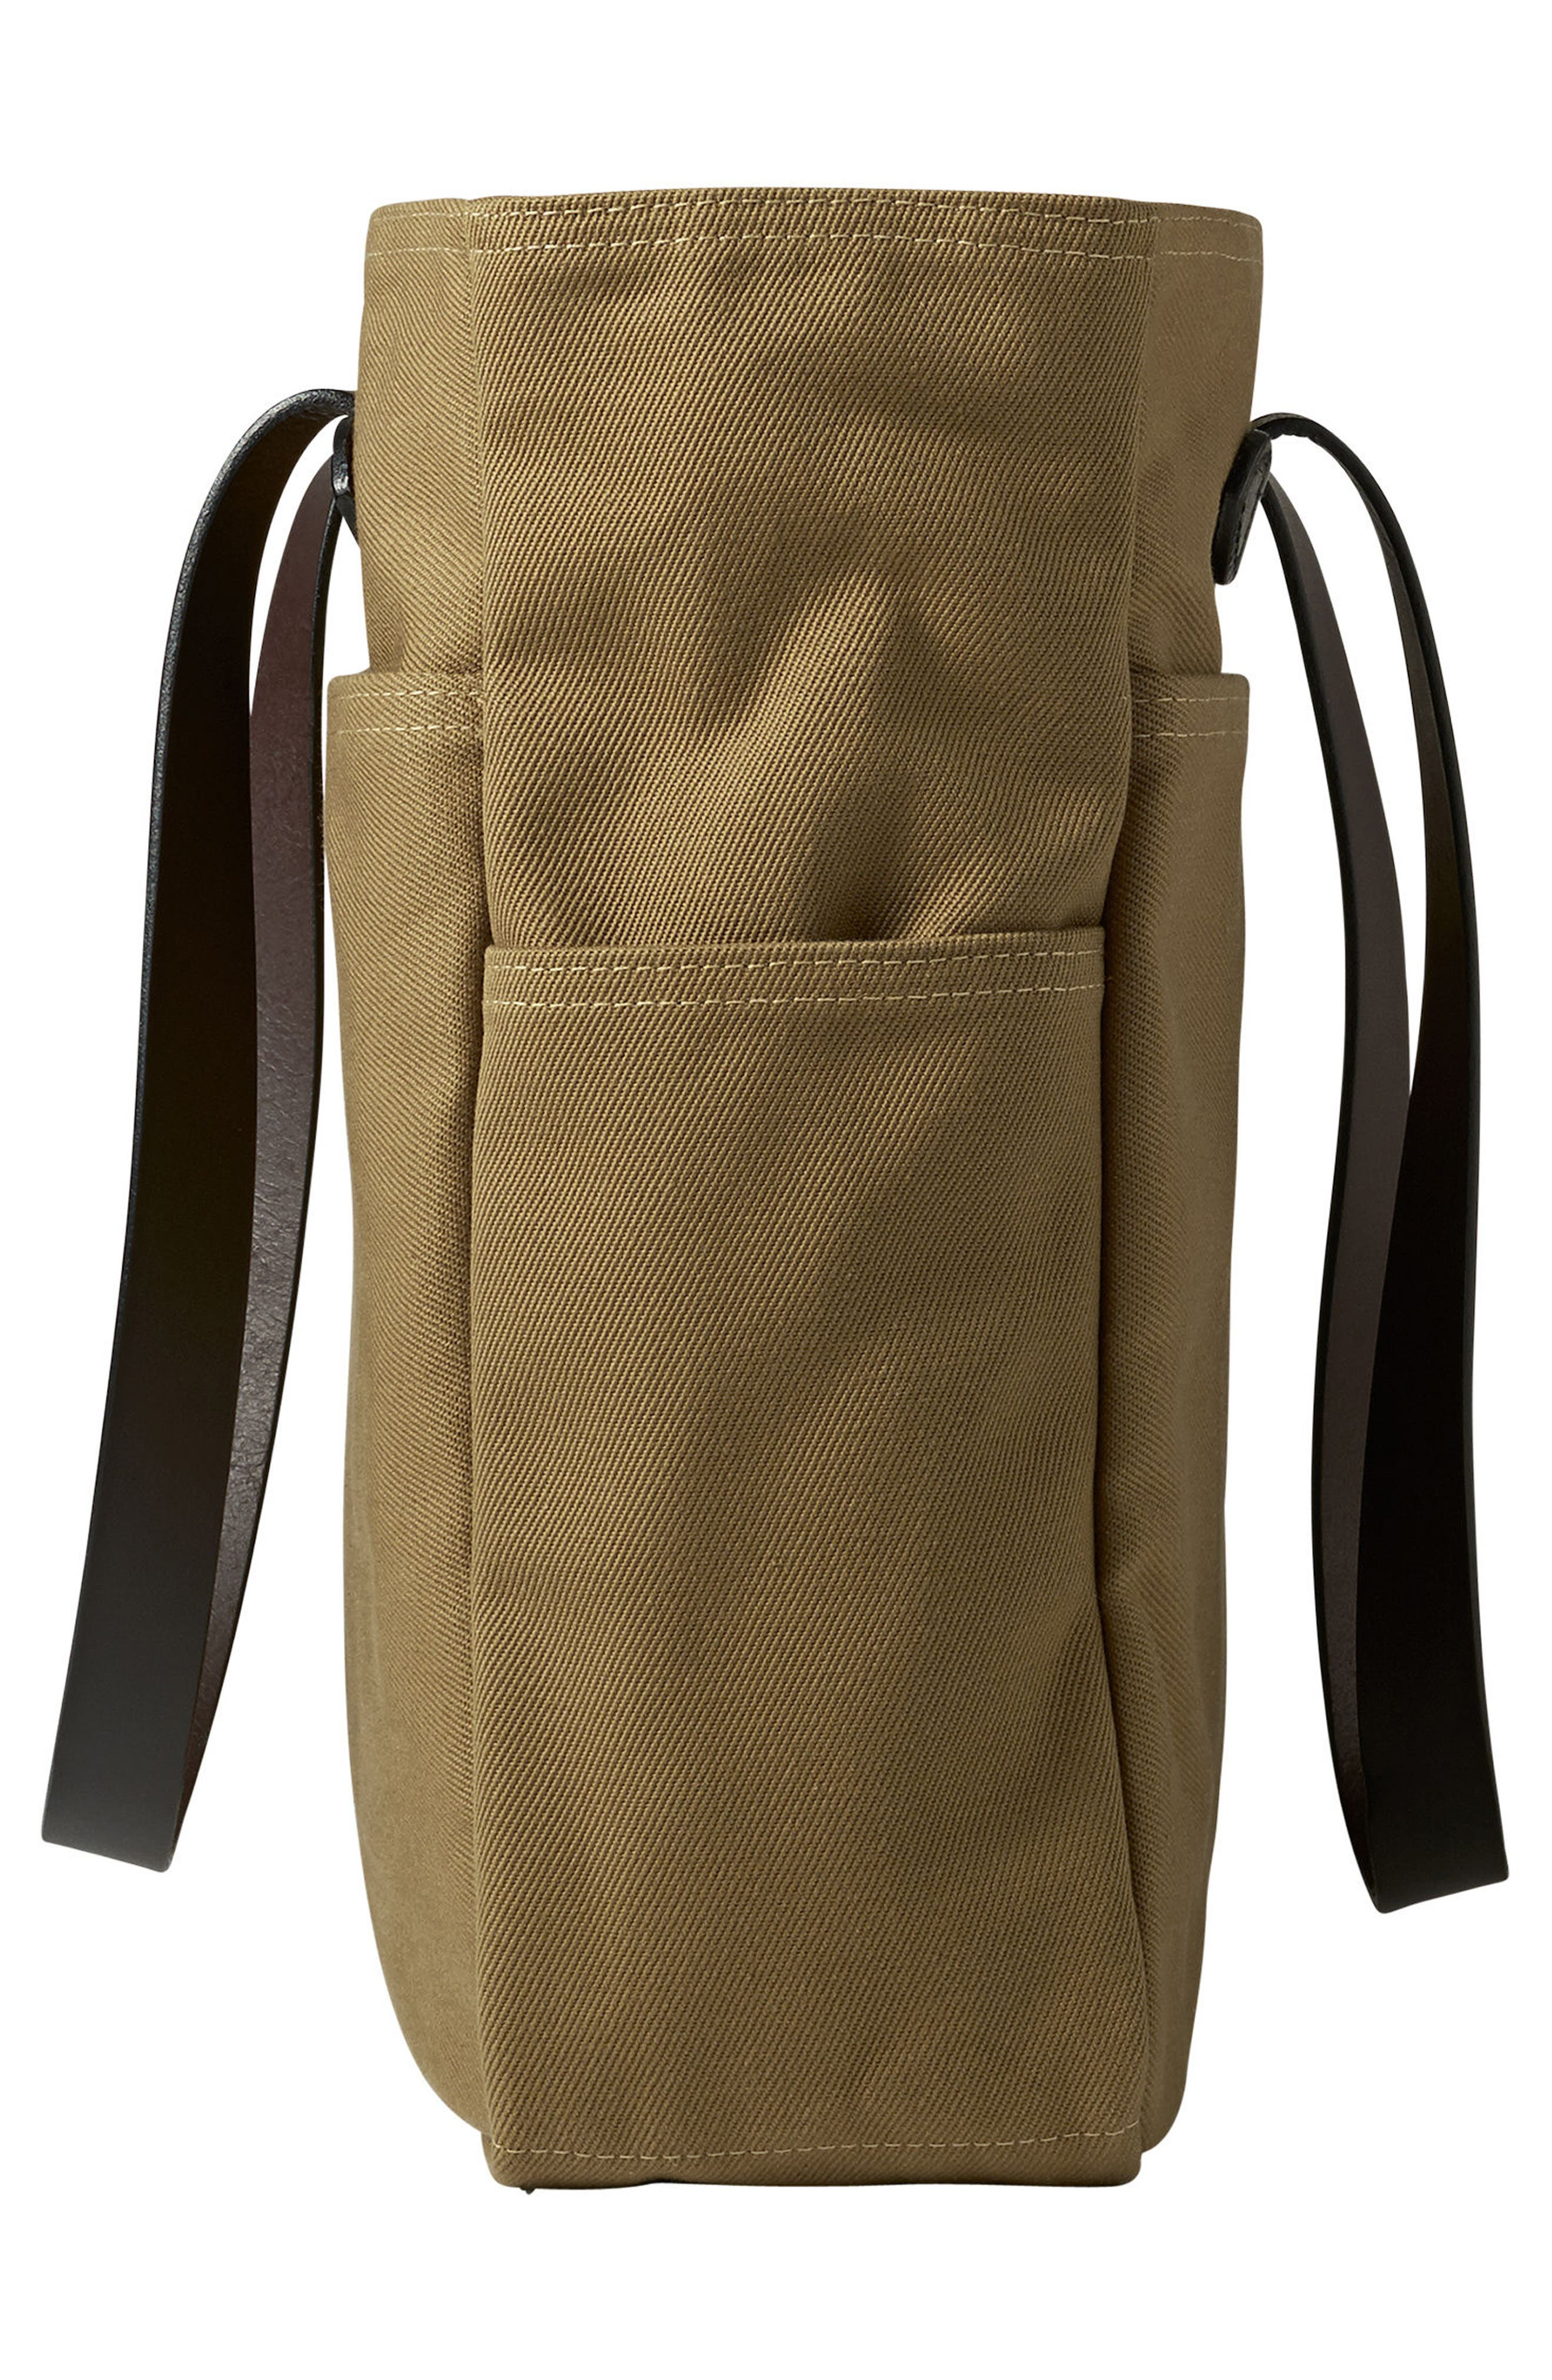 Rugged Twill Tote Bag,                             Alternate thumbnail 4, color,                             242